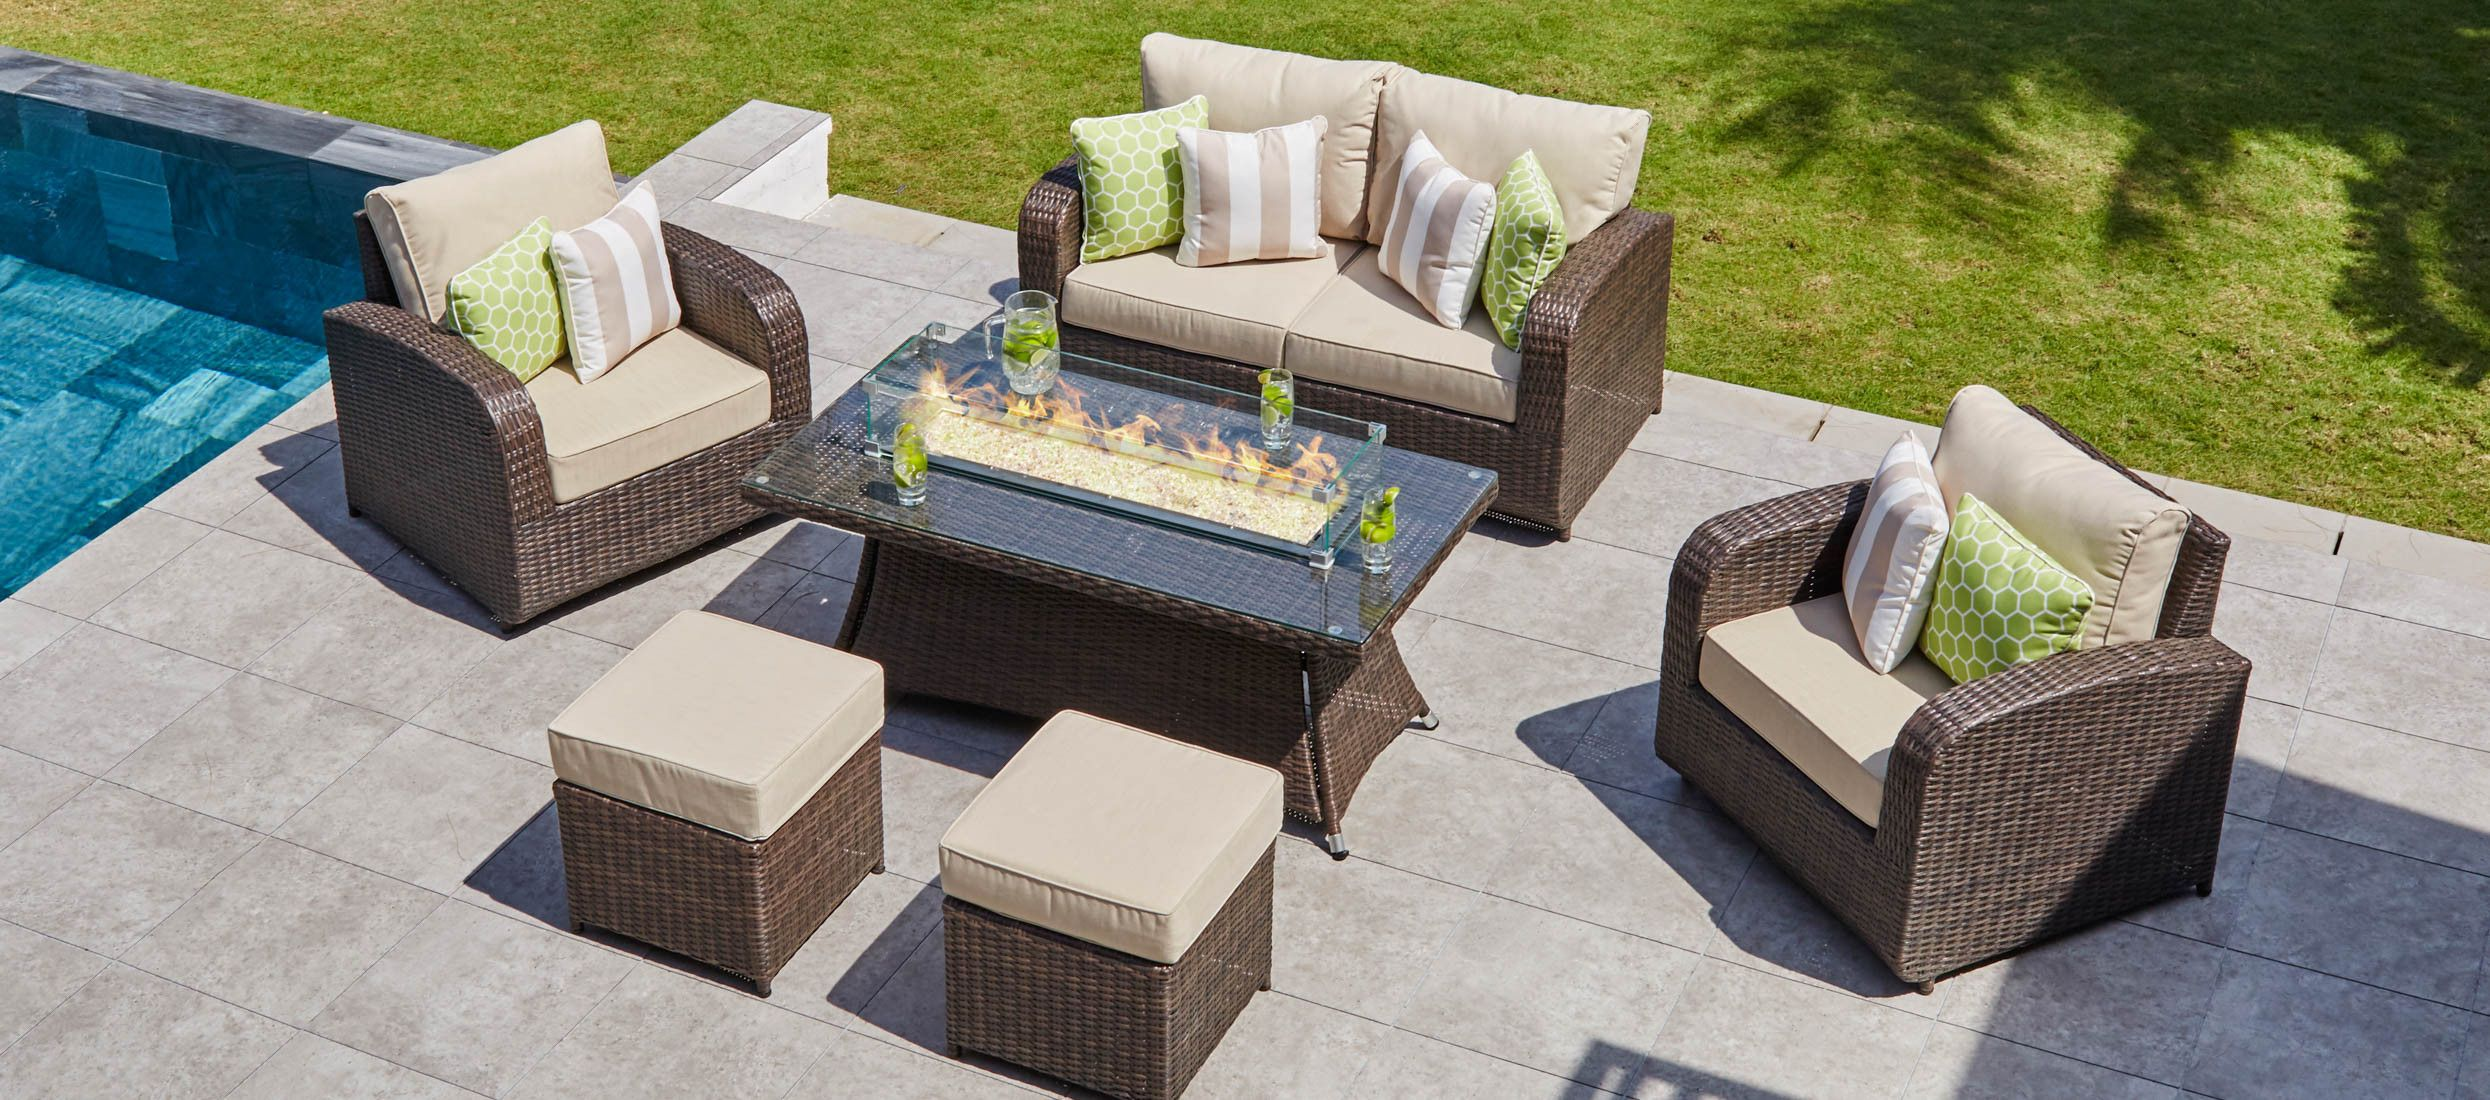 Windsor 9 - with 2 Seat Sofa set, Gas Fire Pit Coffee ...